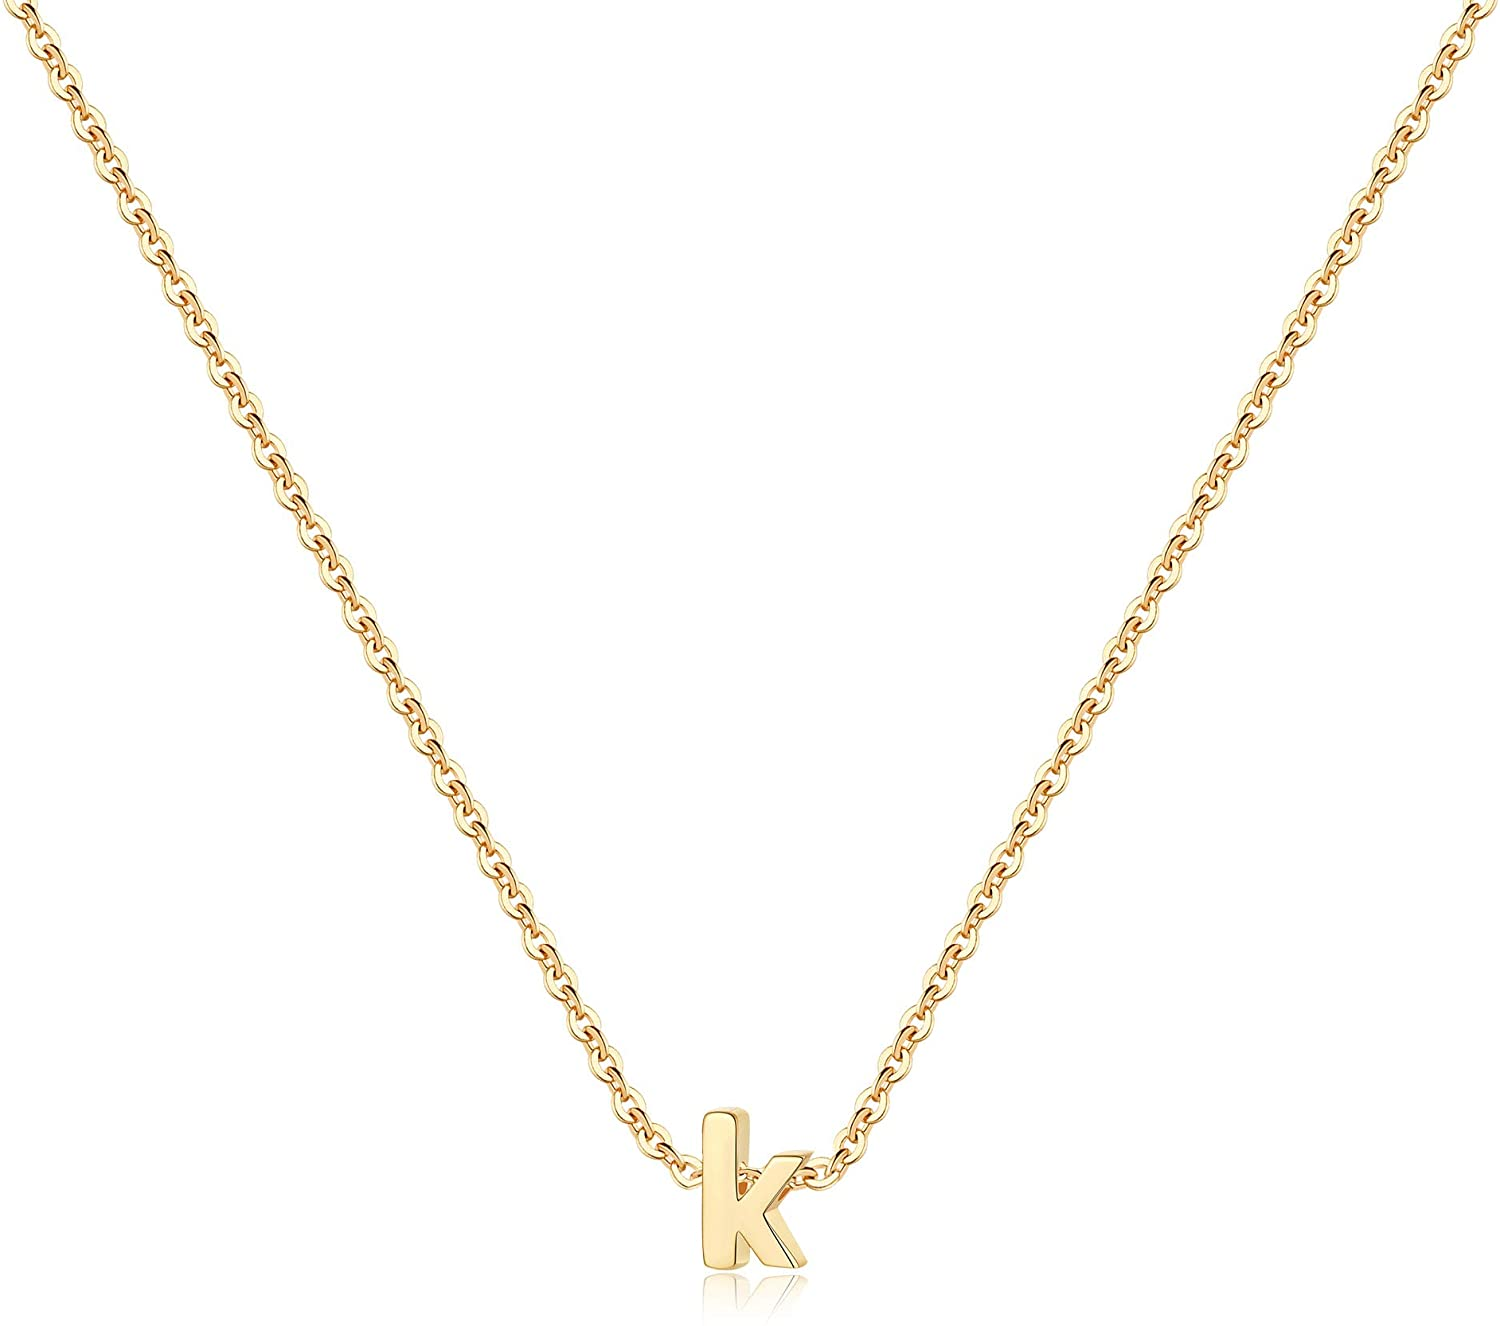 Dainty Tiny Initial Necklace, 14K Gold Plated Lowercase Letter Necklace Small Initial Pendant Necklaces for Women Girls Personalized Minimalist Delicate Monogram Children Kids Alphabet Necklace